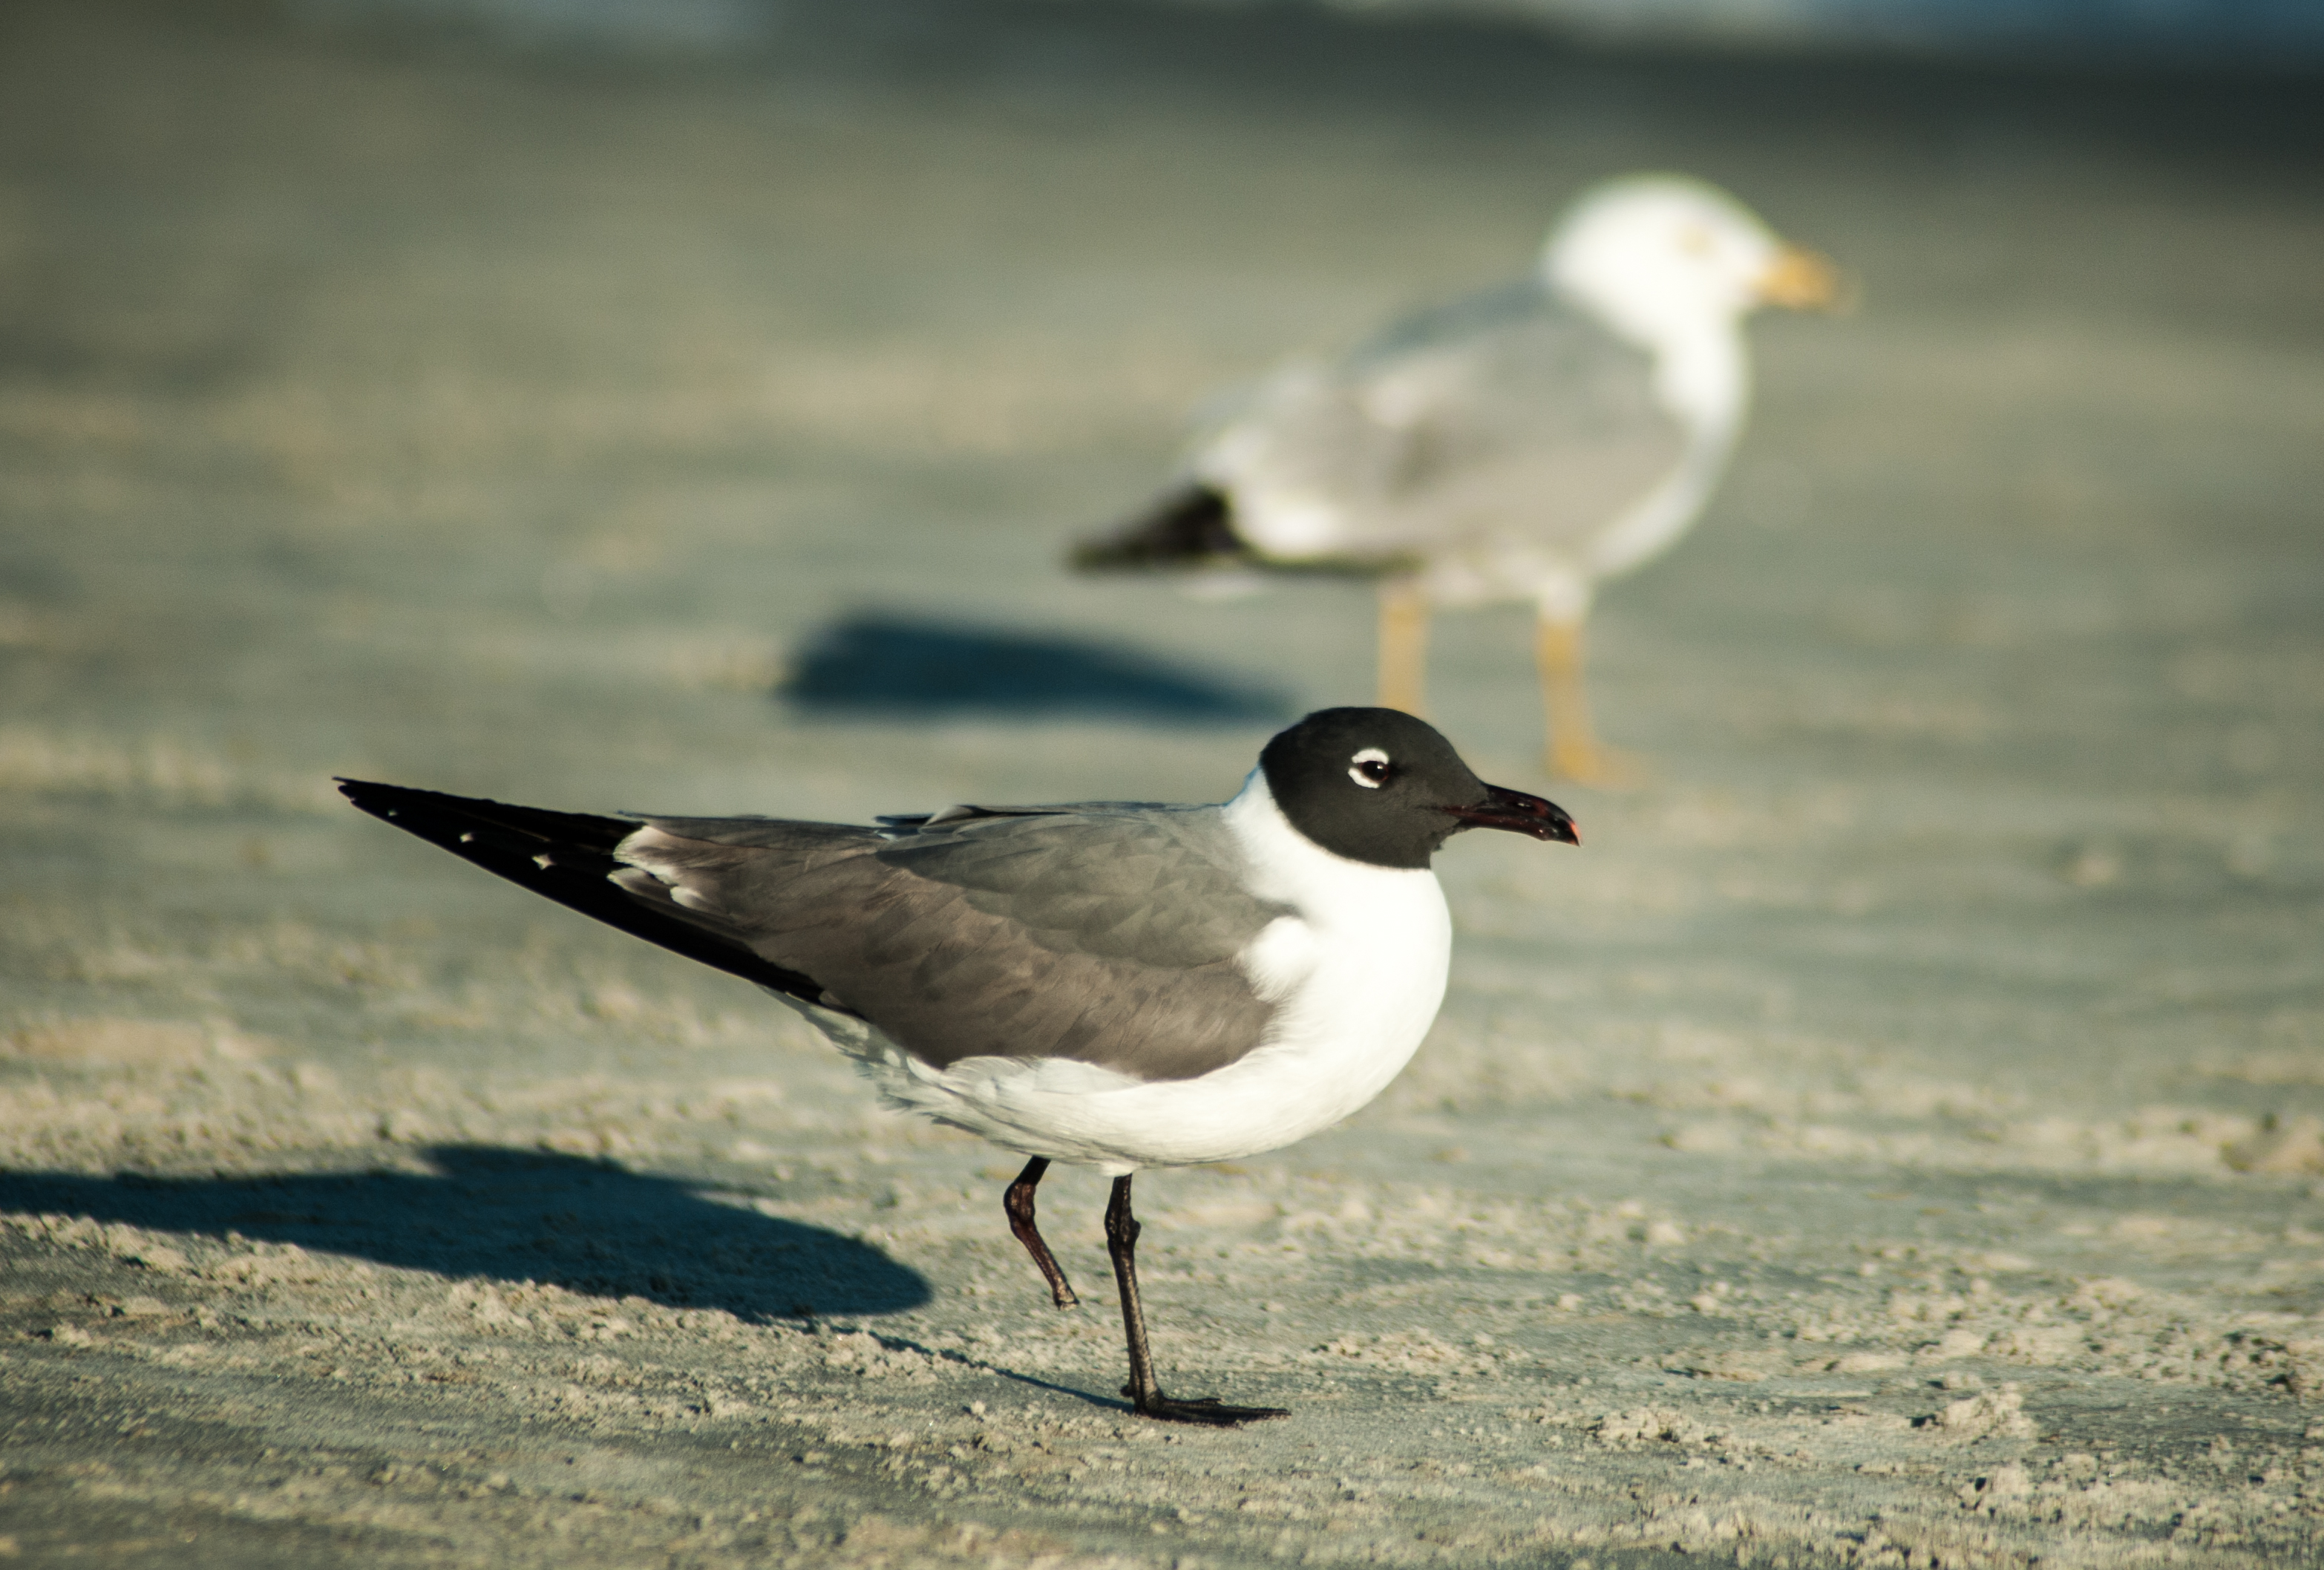 One-legged Black-headed Seagull